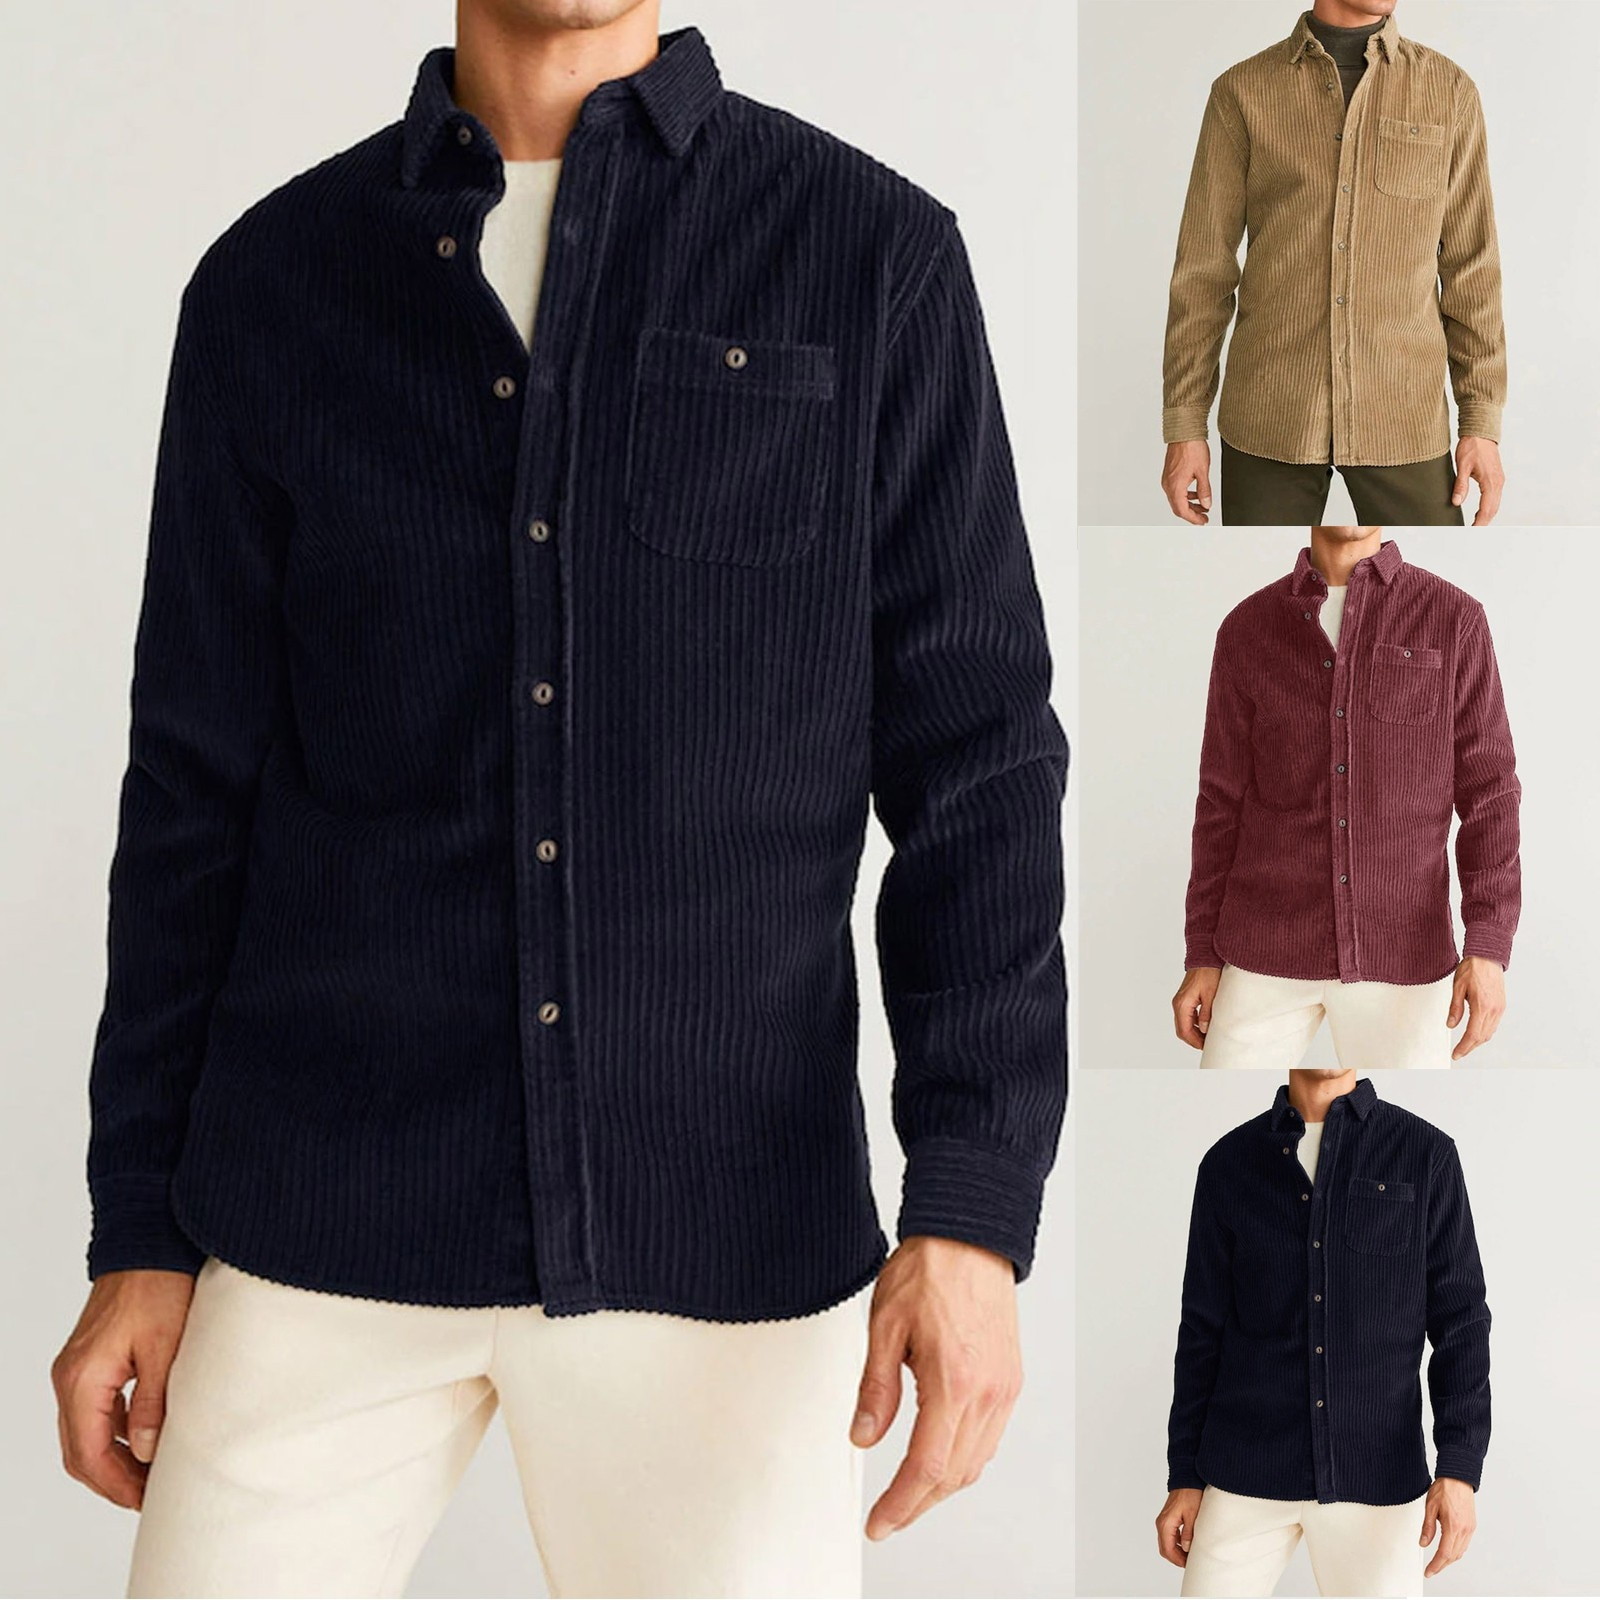 Fashion Men Clothing New Corduroy Solid Color Casual Button Loose Long-sleeved Pocket Shirt Top Casual Breathable Comfort Shirt